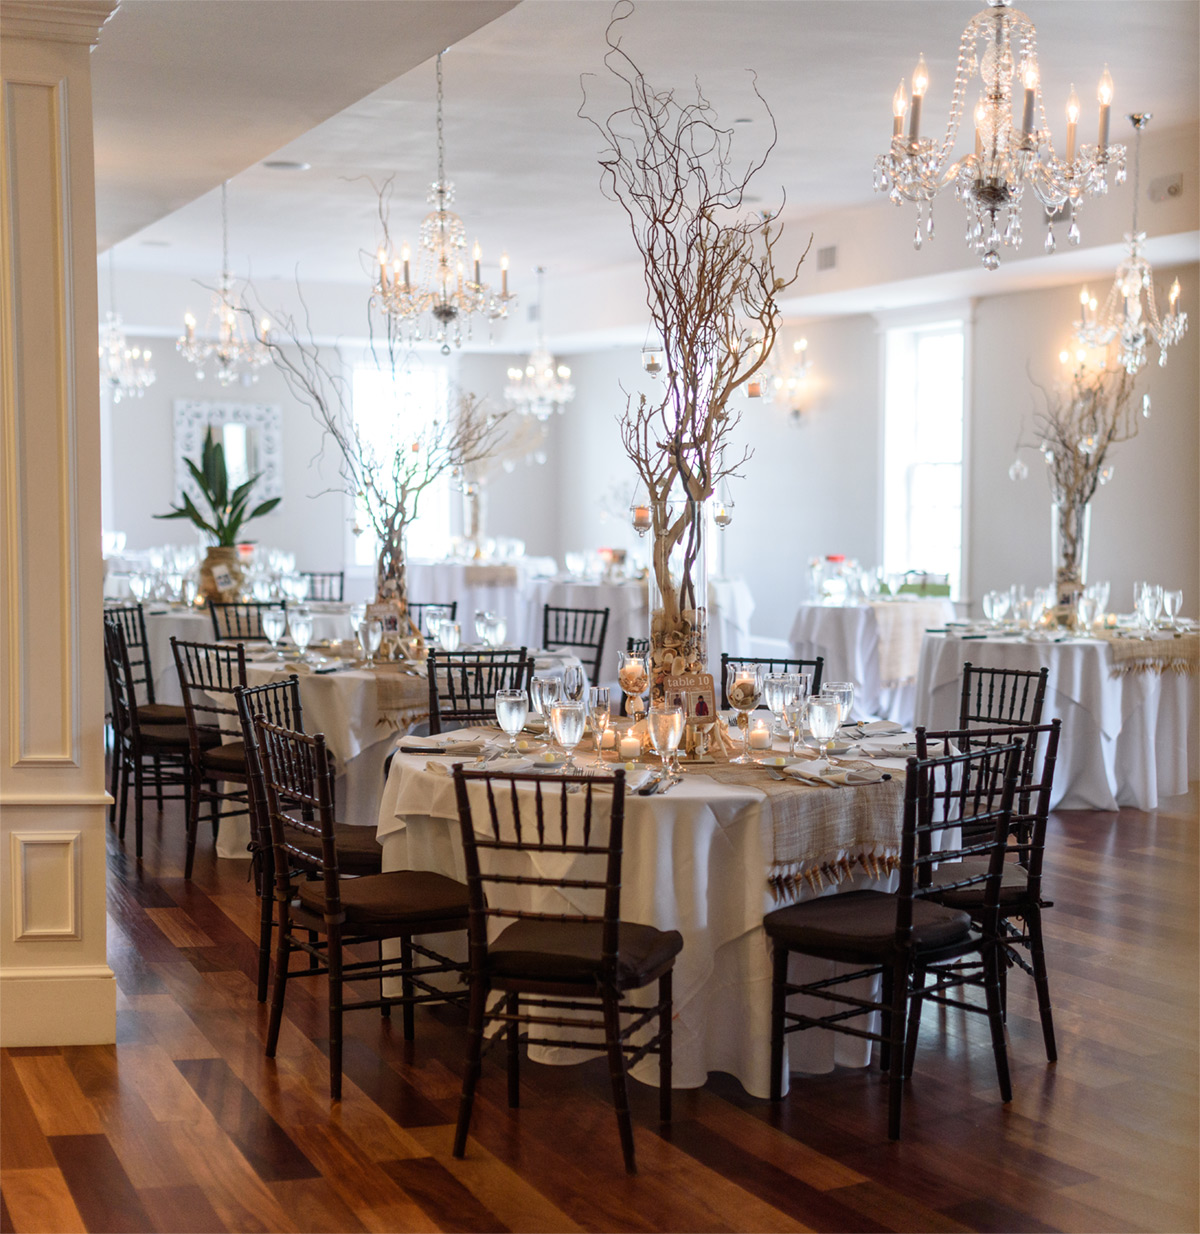 St-Augustine-Wedding-Venues-Villa-Blanca-Wedding-Reception